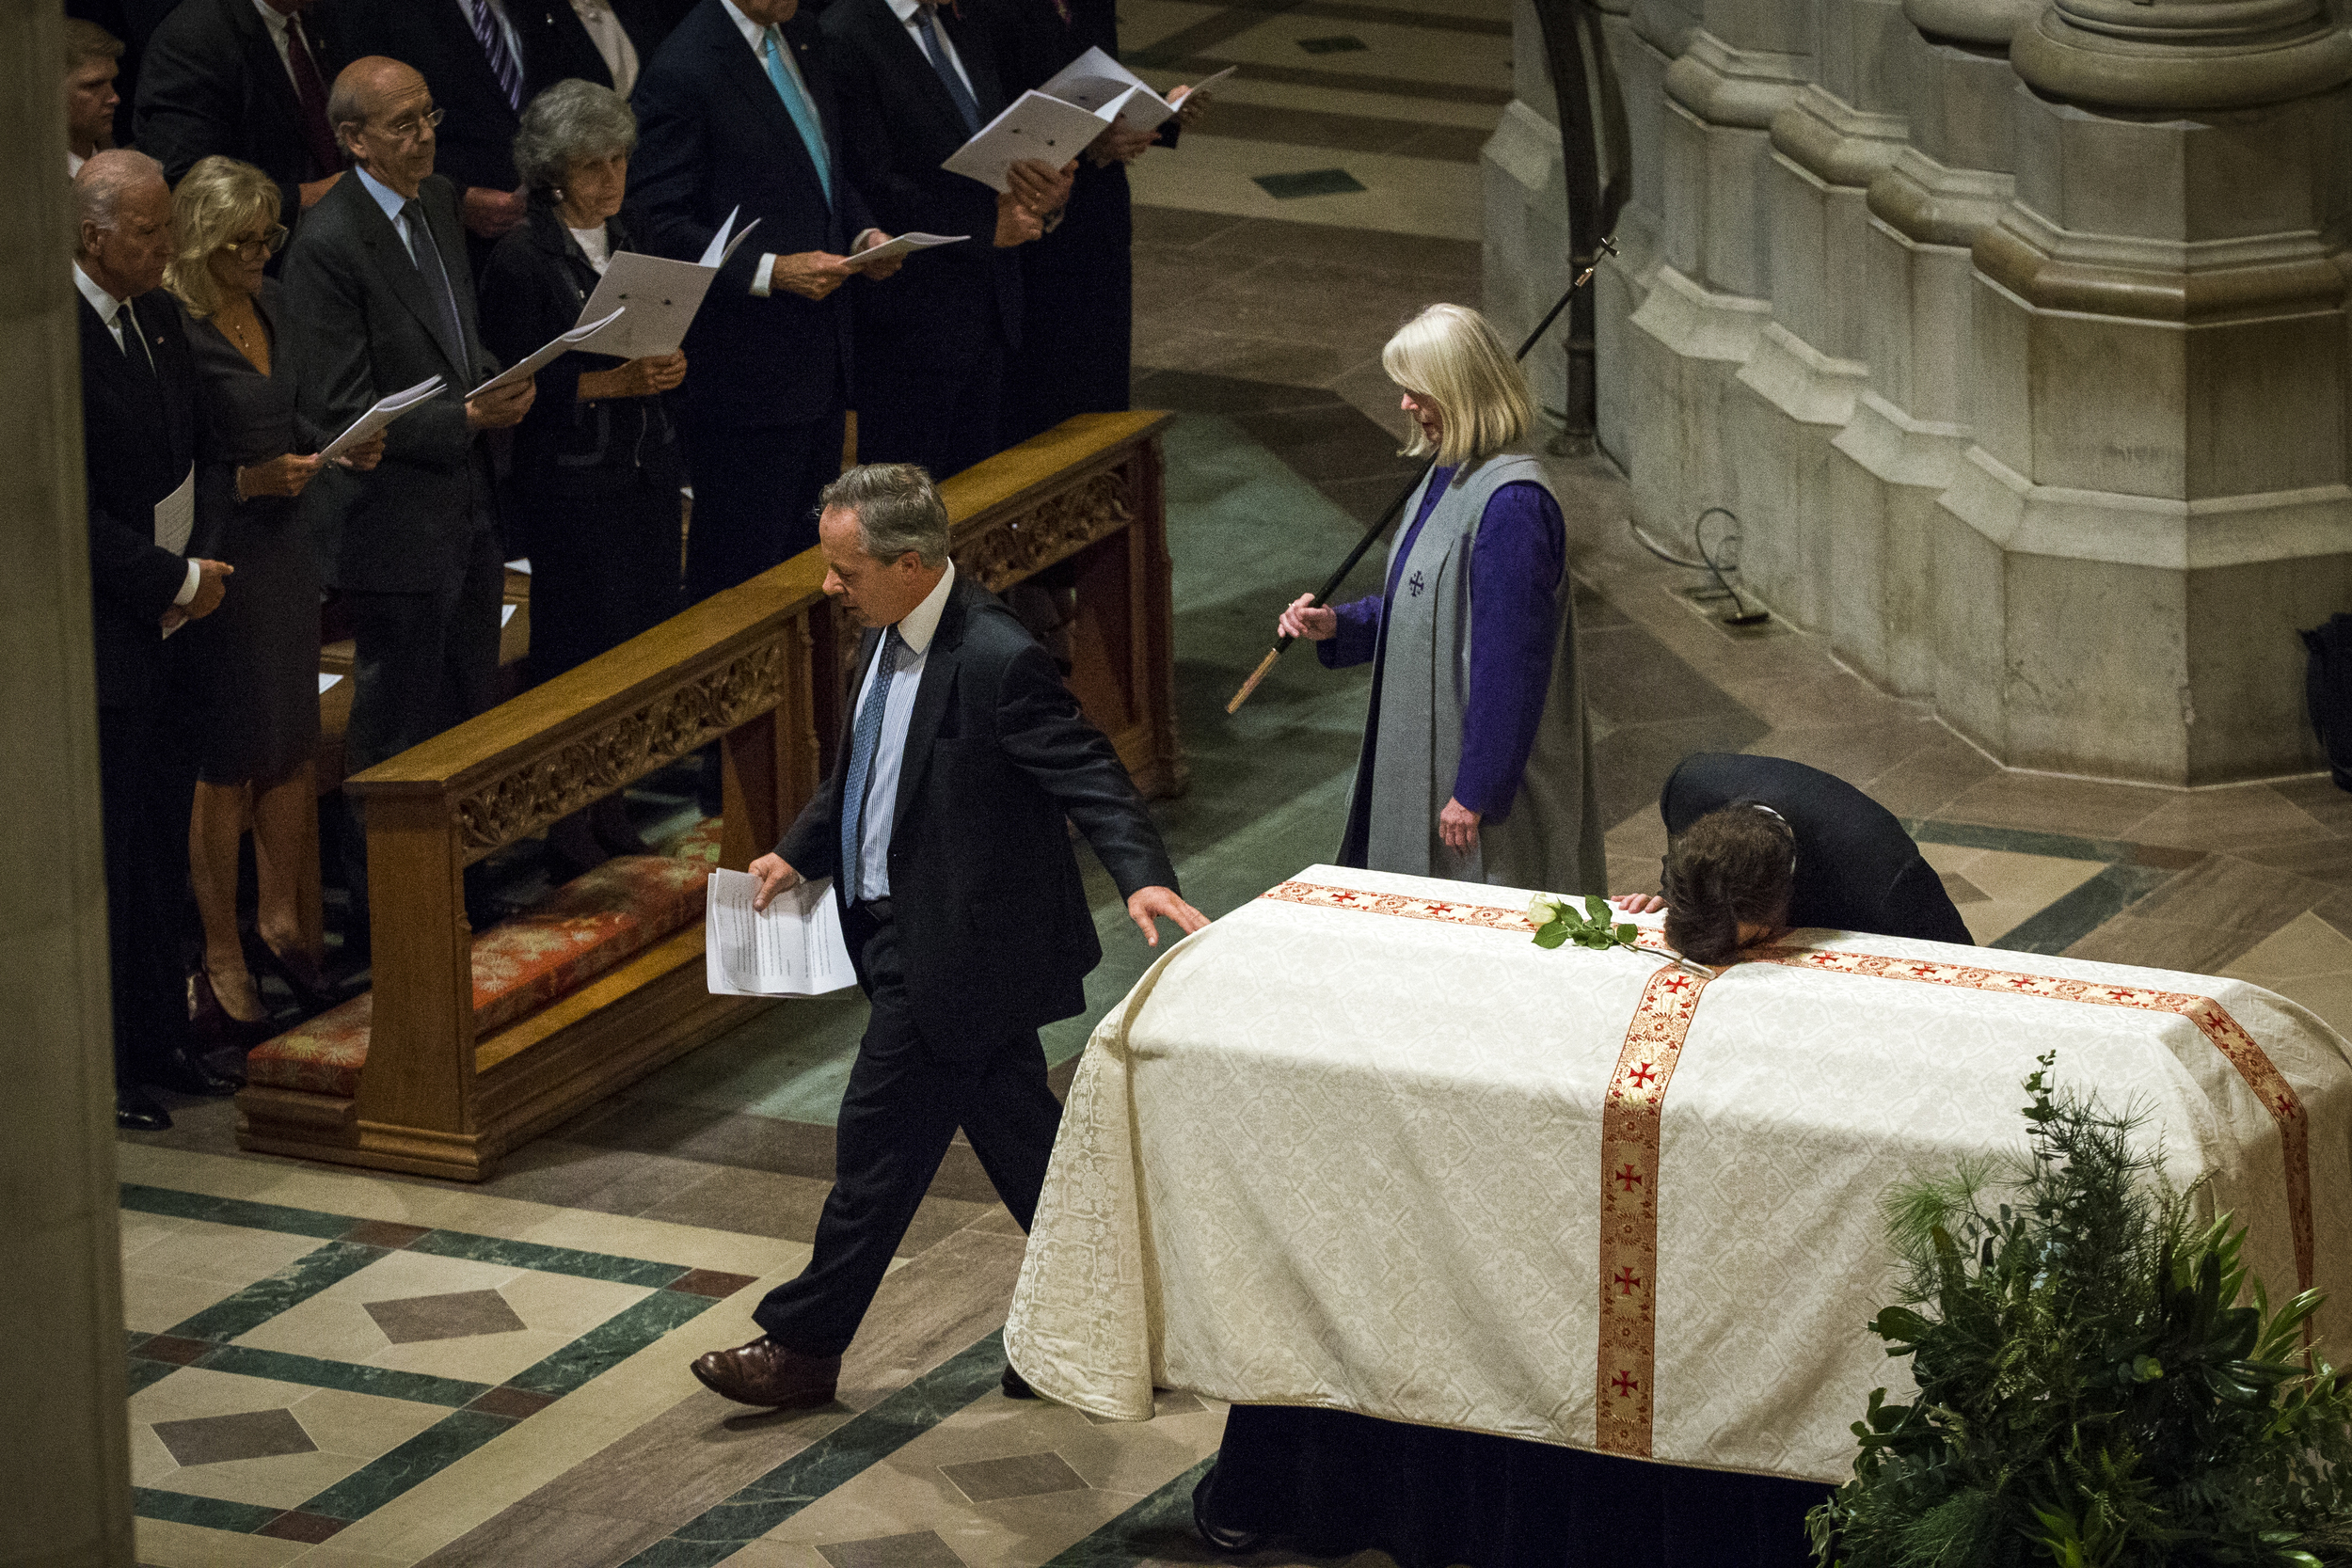 Quinn Bradlee, a son of former Washington Post executive editor Benjamin C. Bradlee, rests his head on his fathers casket after he spoke at his father's funeral at the Washington National Cathedral in Washington, DC on Wednesday October 29, 2014.